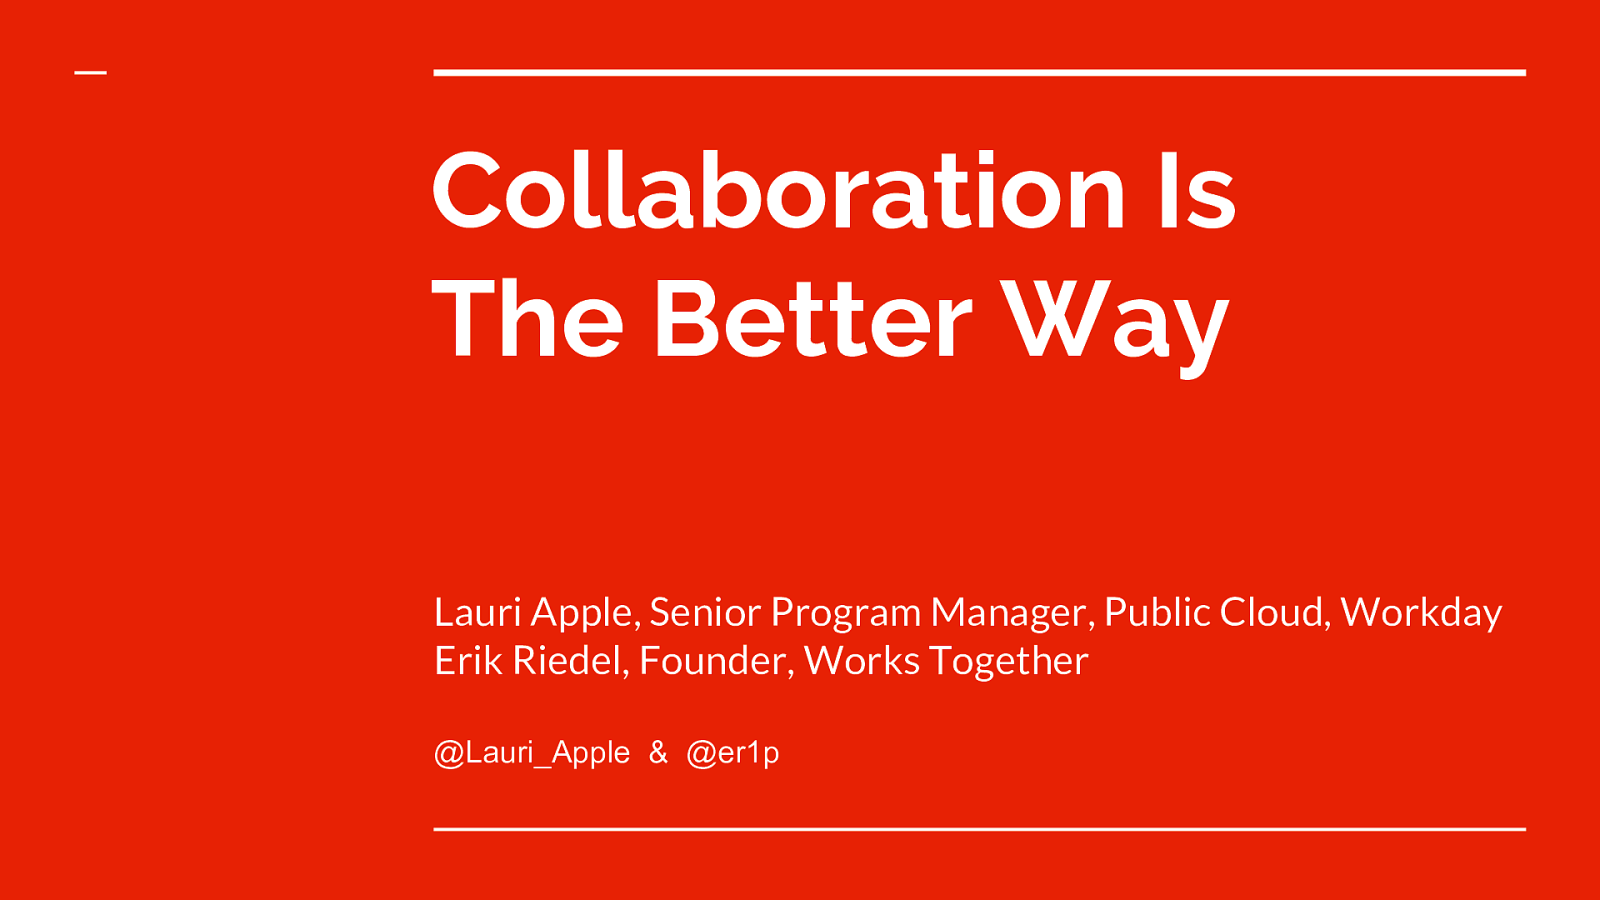 Collaboration Is The Better Way